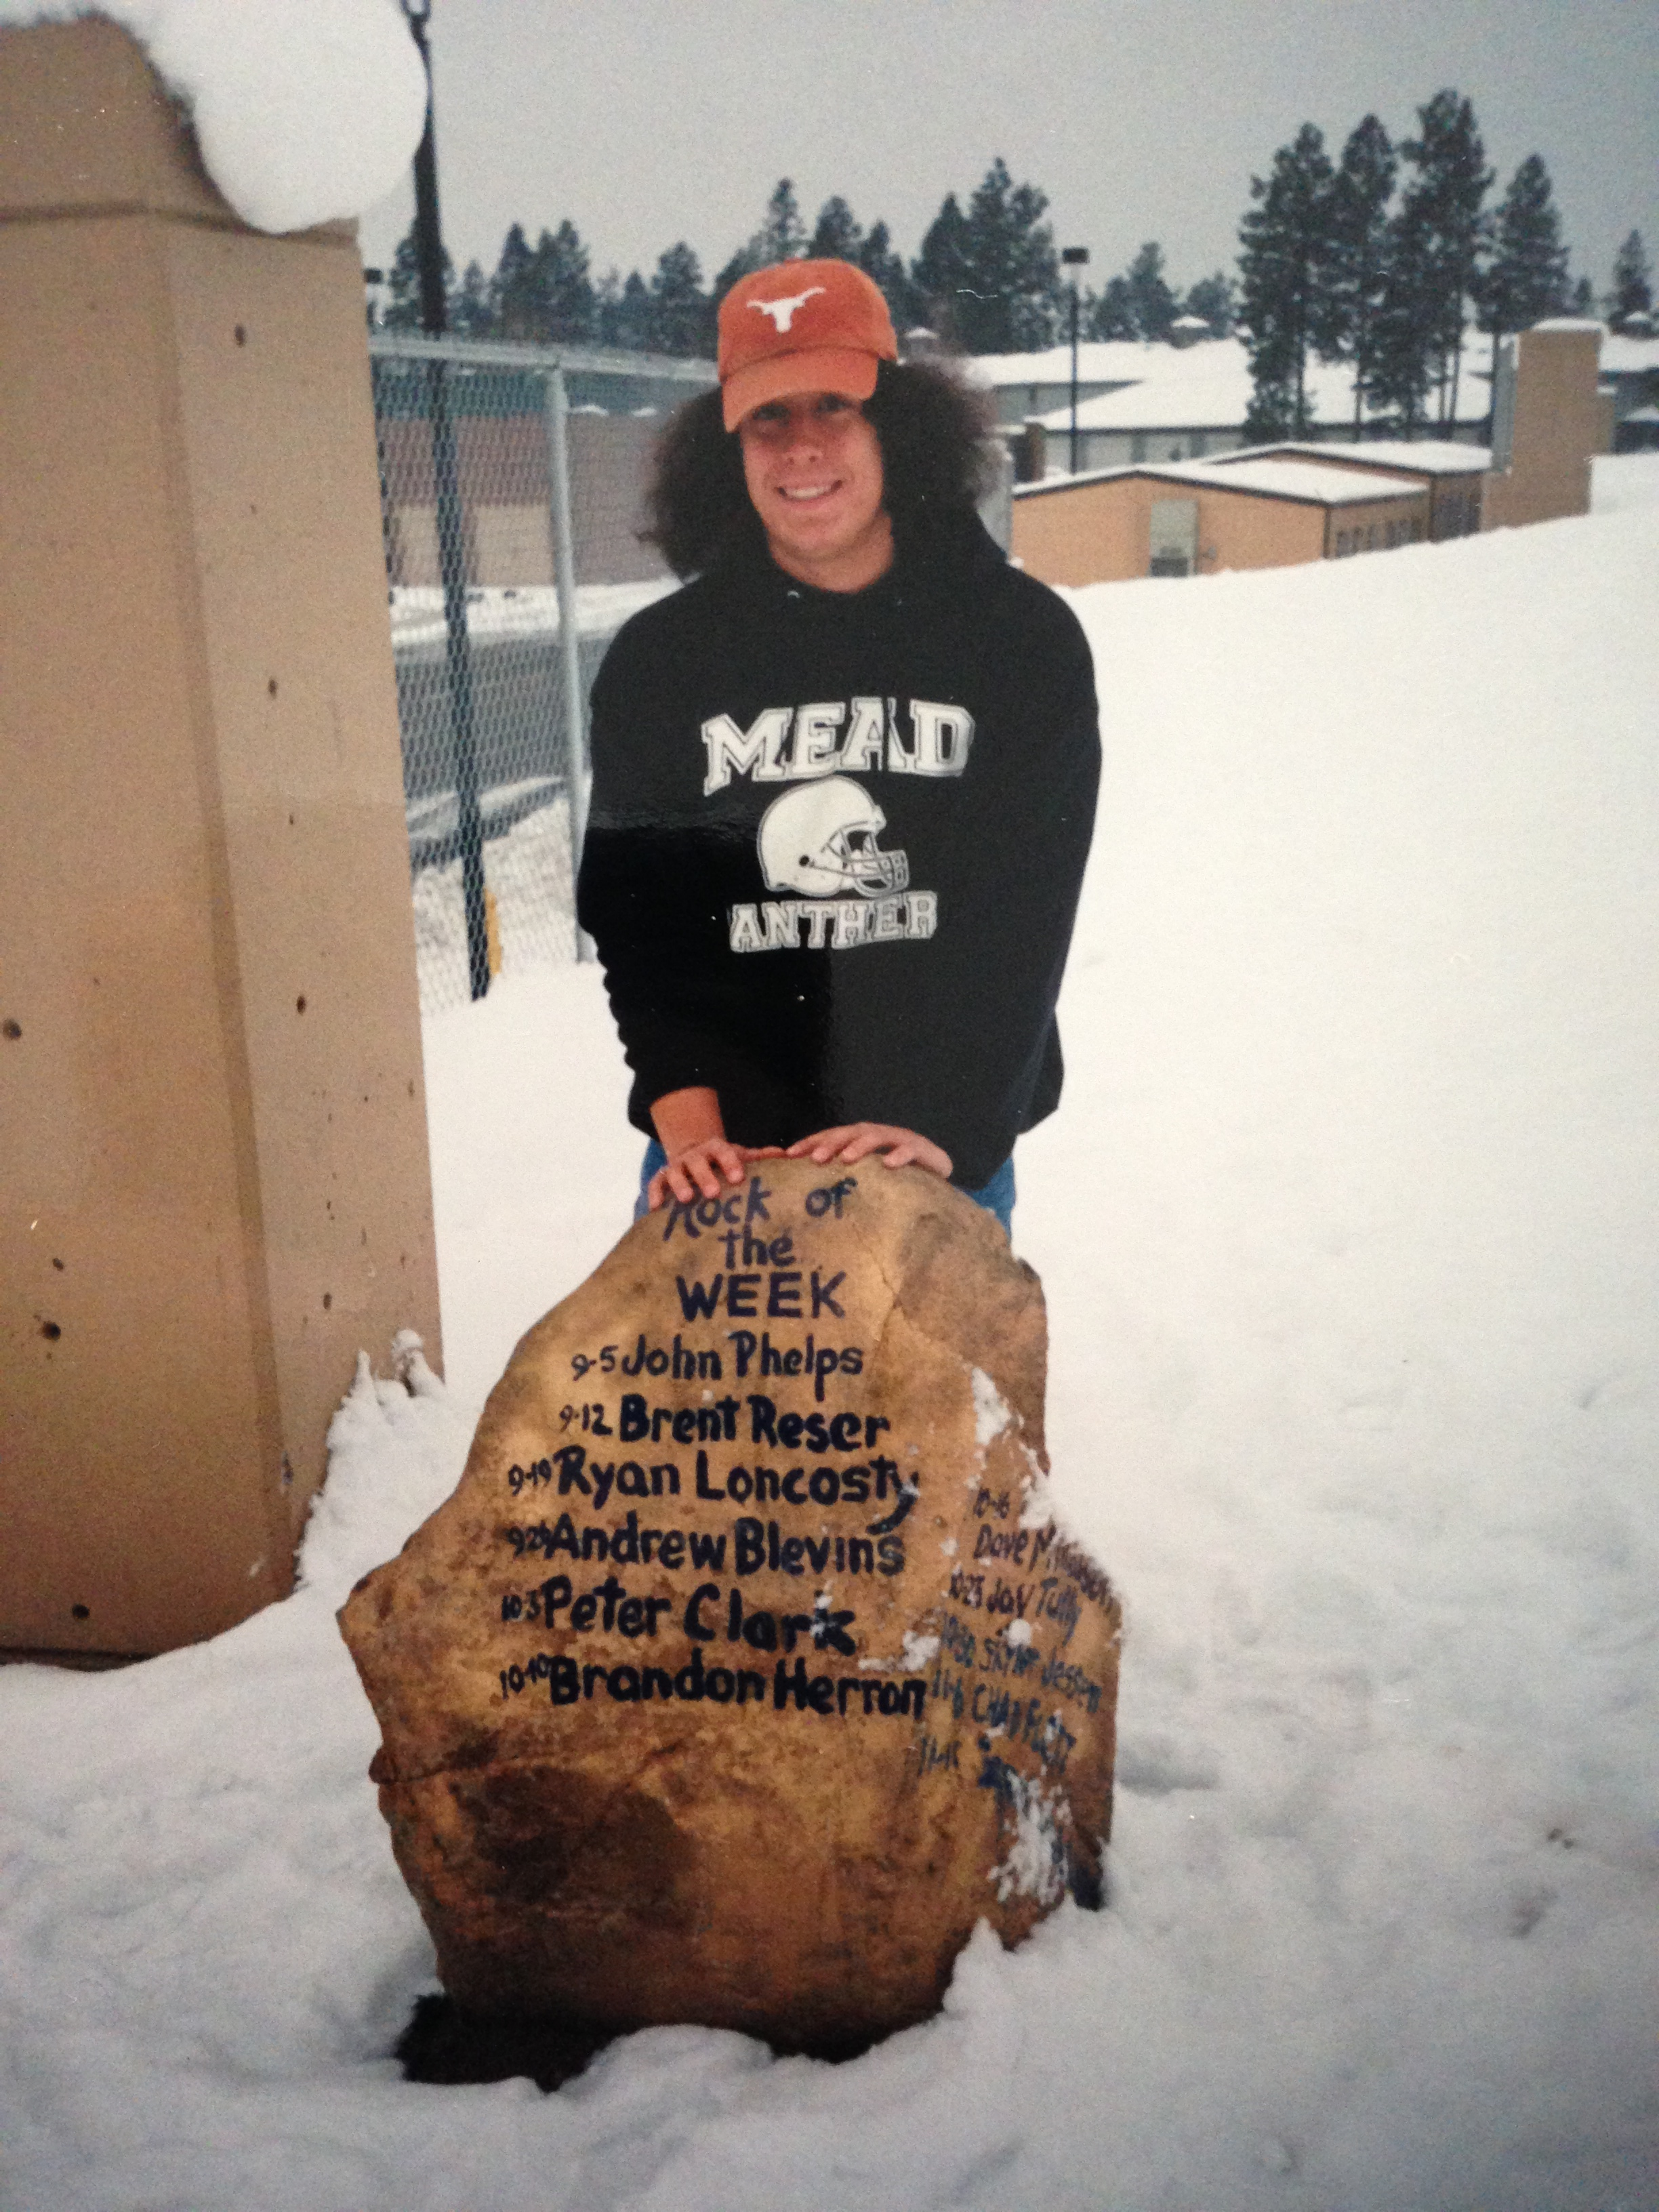 This rock that I am standing next to (excuse the hair) plays a large part in the legacy of Sean Carty. Read on to find out how.